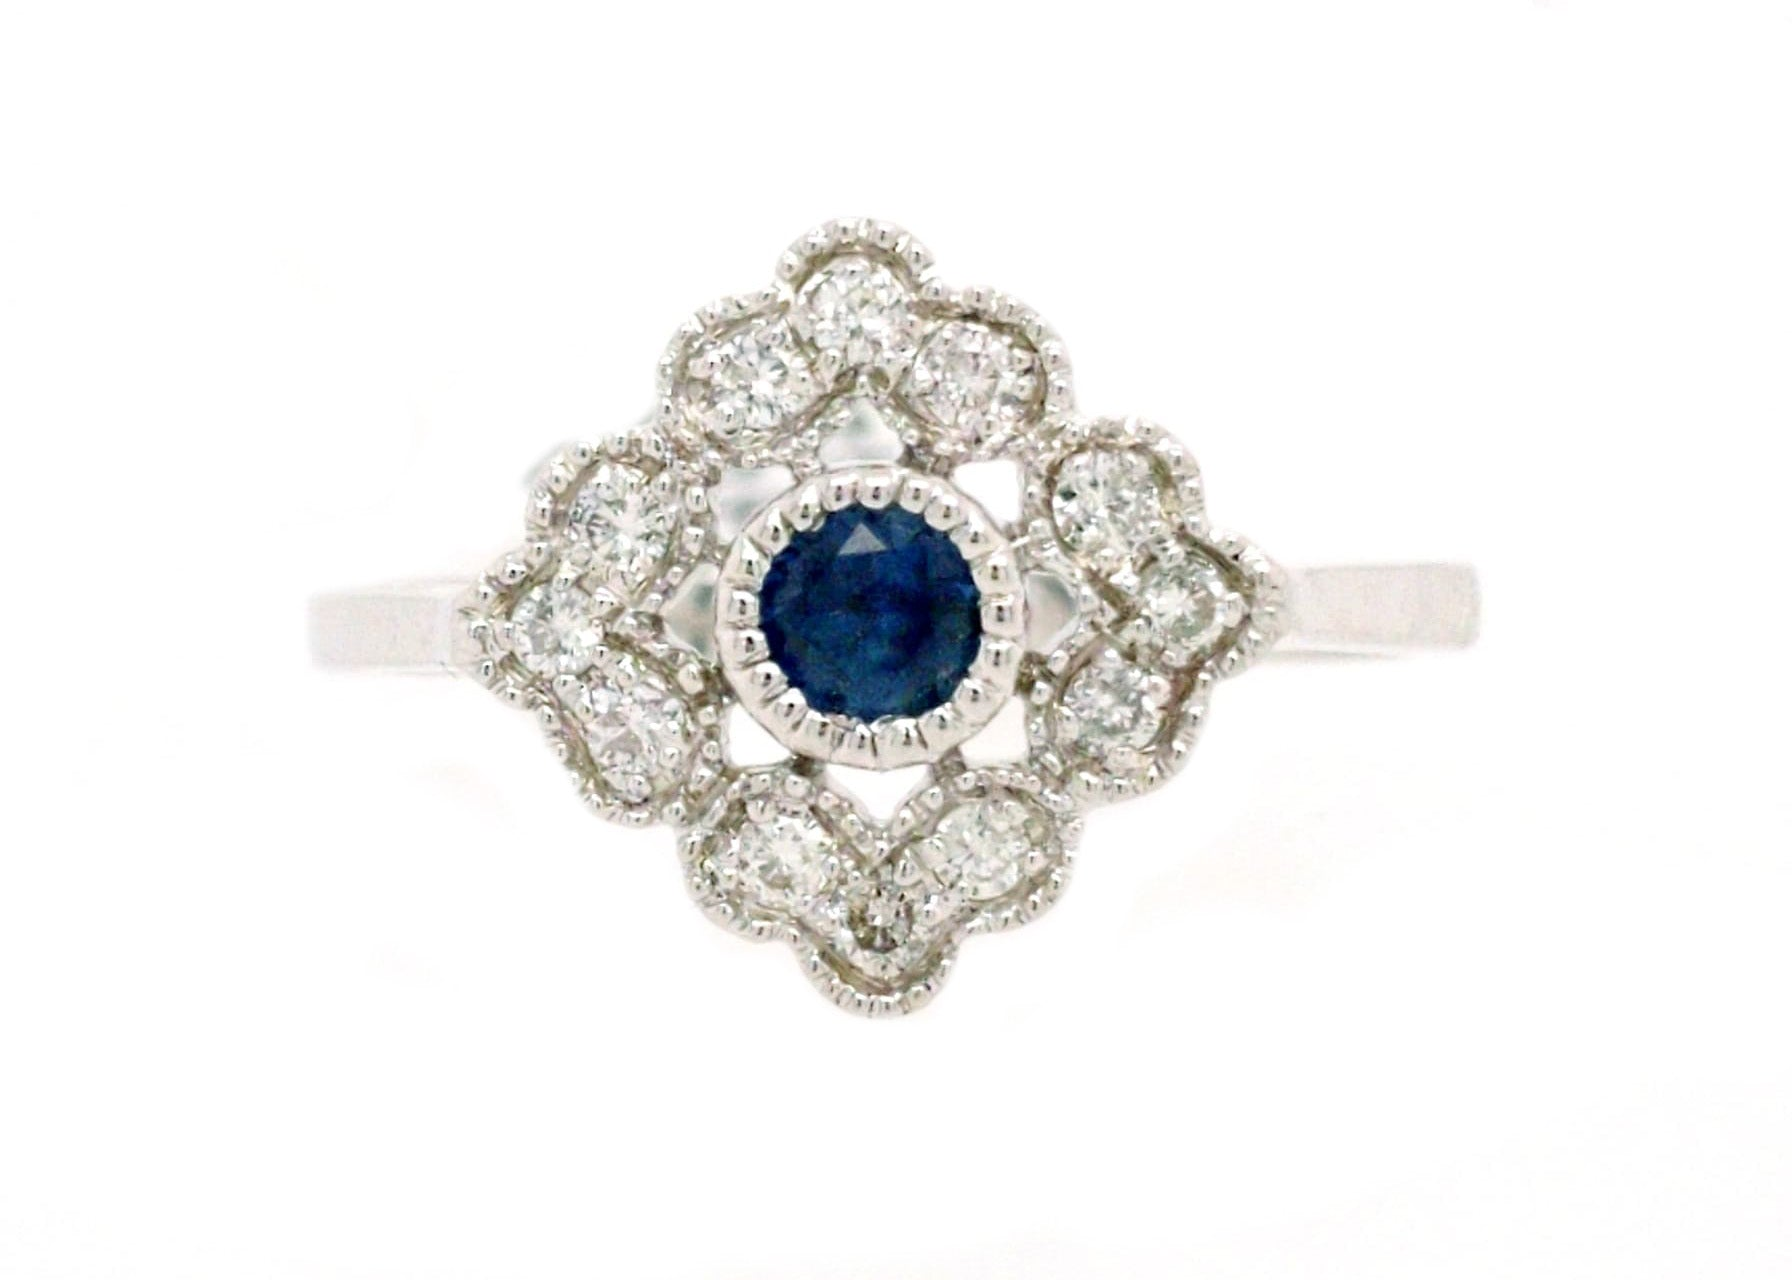 Beatrice - White Gold, Diamond, and Natural Sapphire Ring